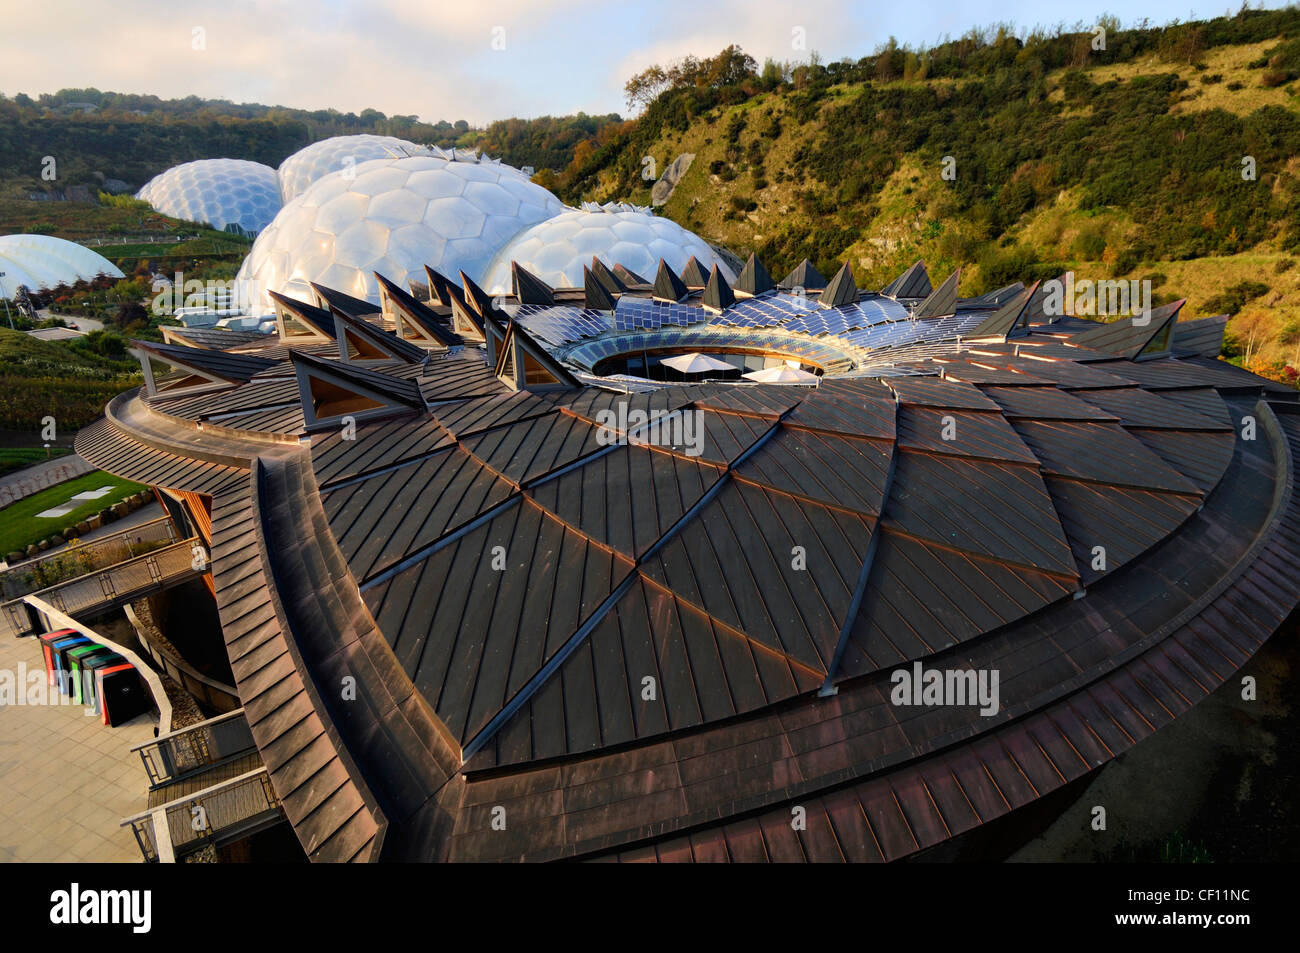 Core and Biomes Eden project - Stock Image